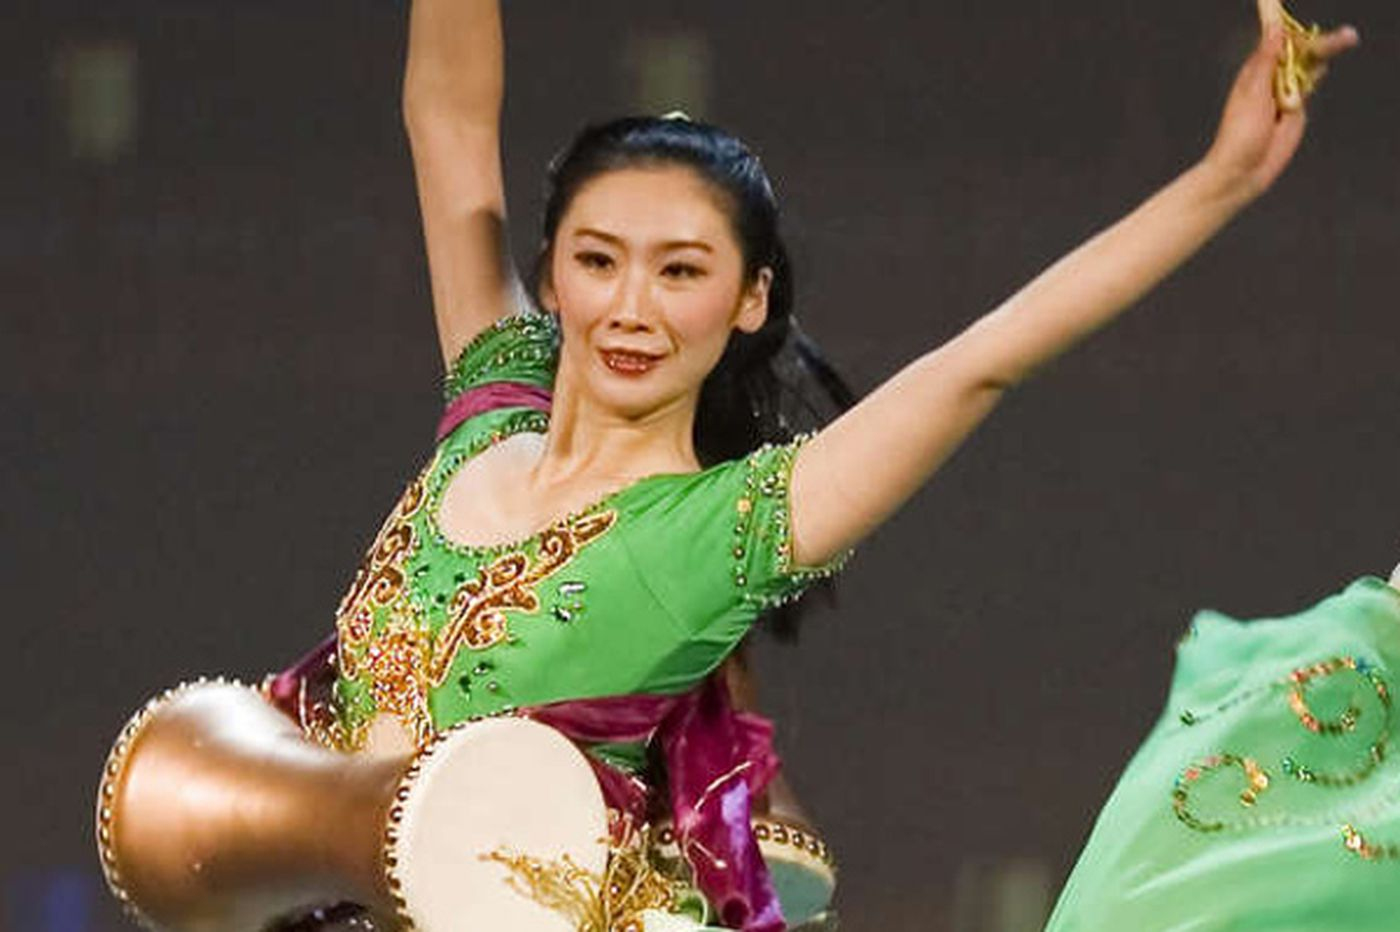 Shen Yun celebrates Chinese culture, uncomfortably